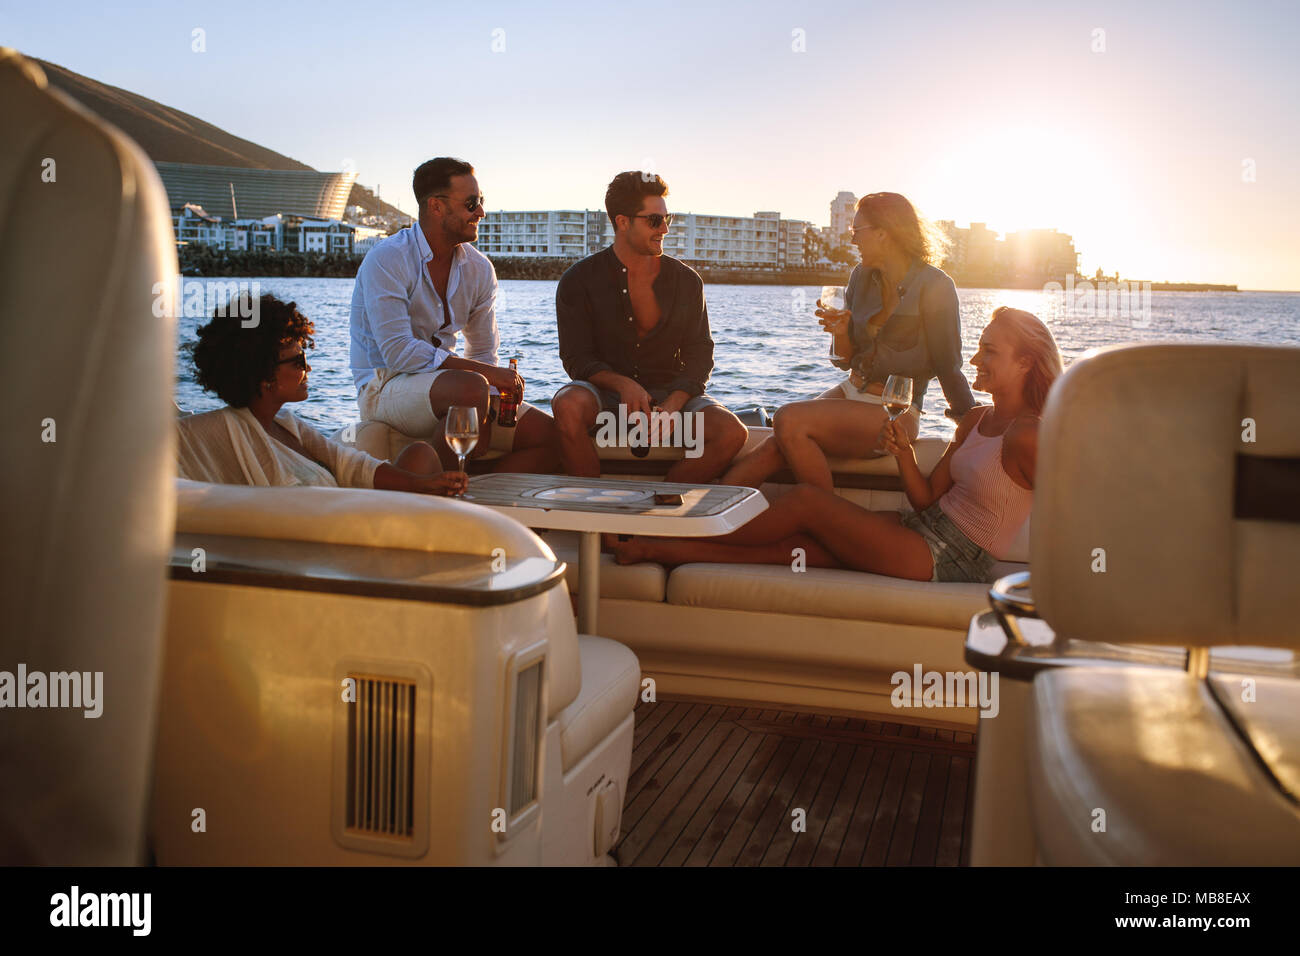 Portrait of young people sitting on a private yacht and drinking. Friends having boat party at sunset. - Stock Image